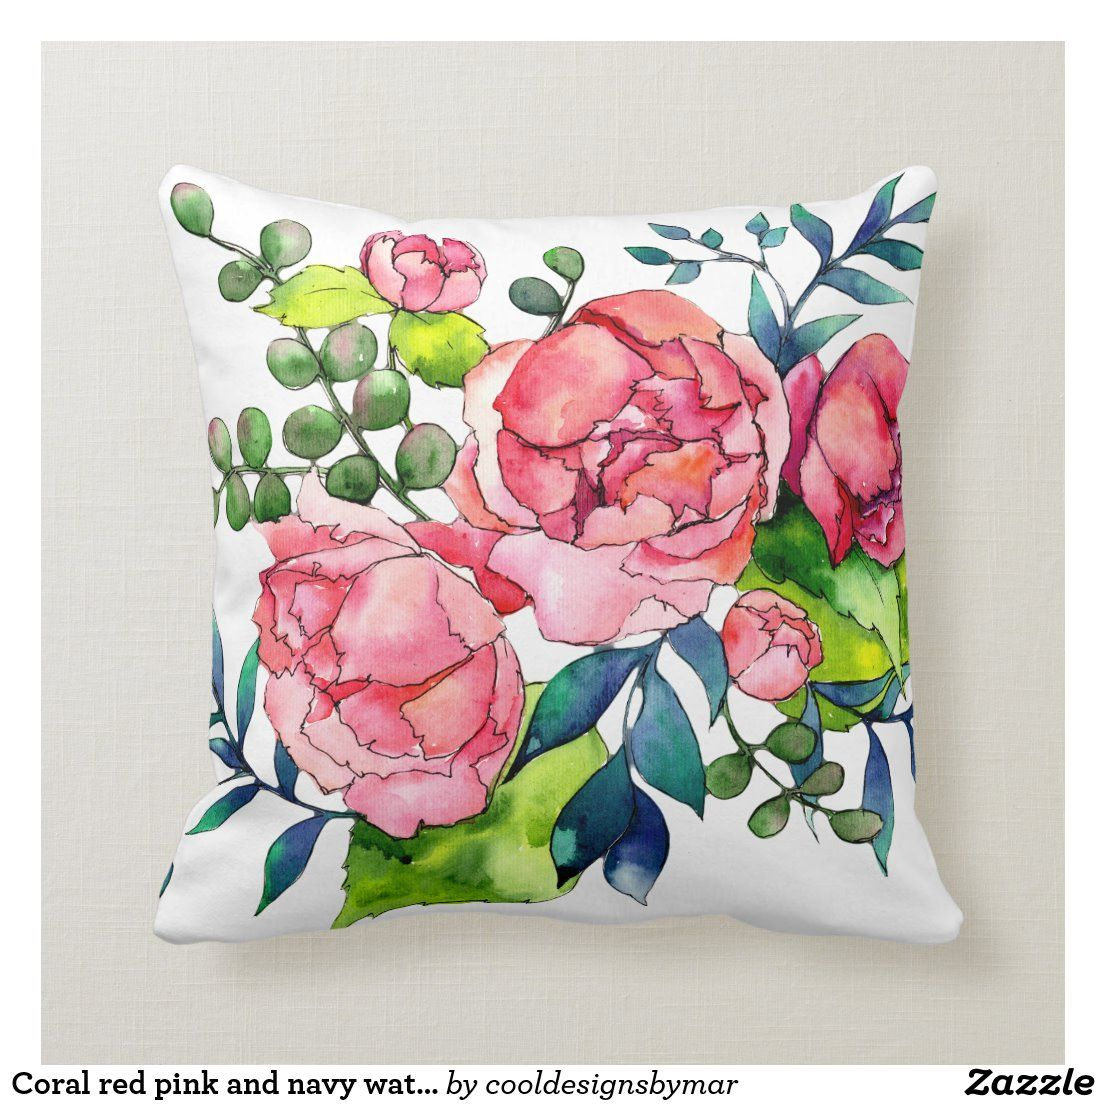 Coral Red Pink And Navy Watercolor Peony Roses Throw Pillow Zazzle Com In 2021 Throw Pillows Throw Pillows Watercolor Watercolor Peonies